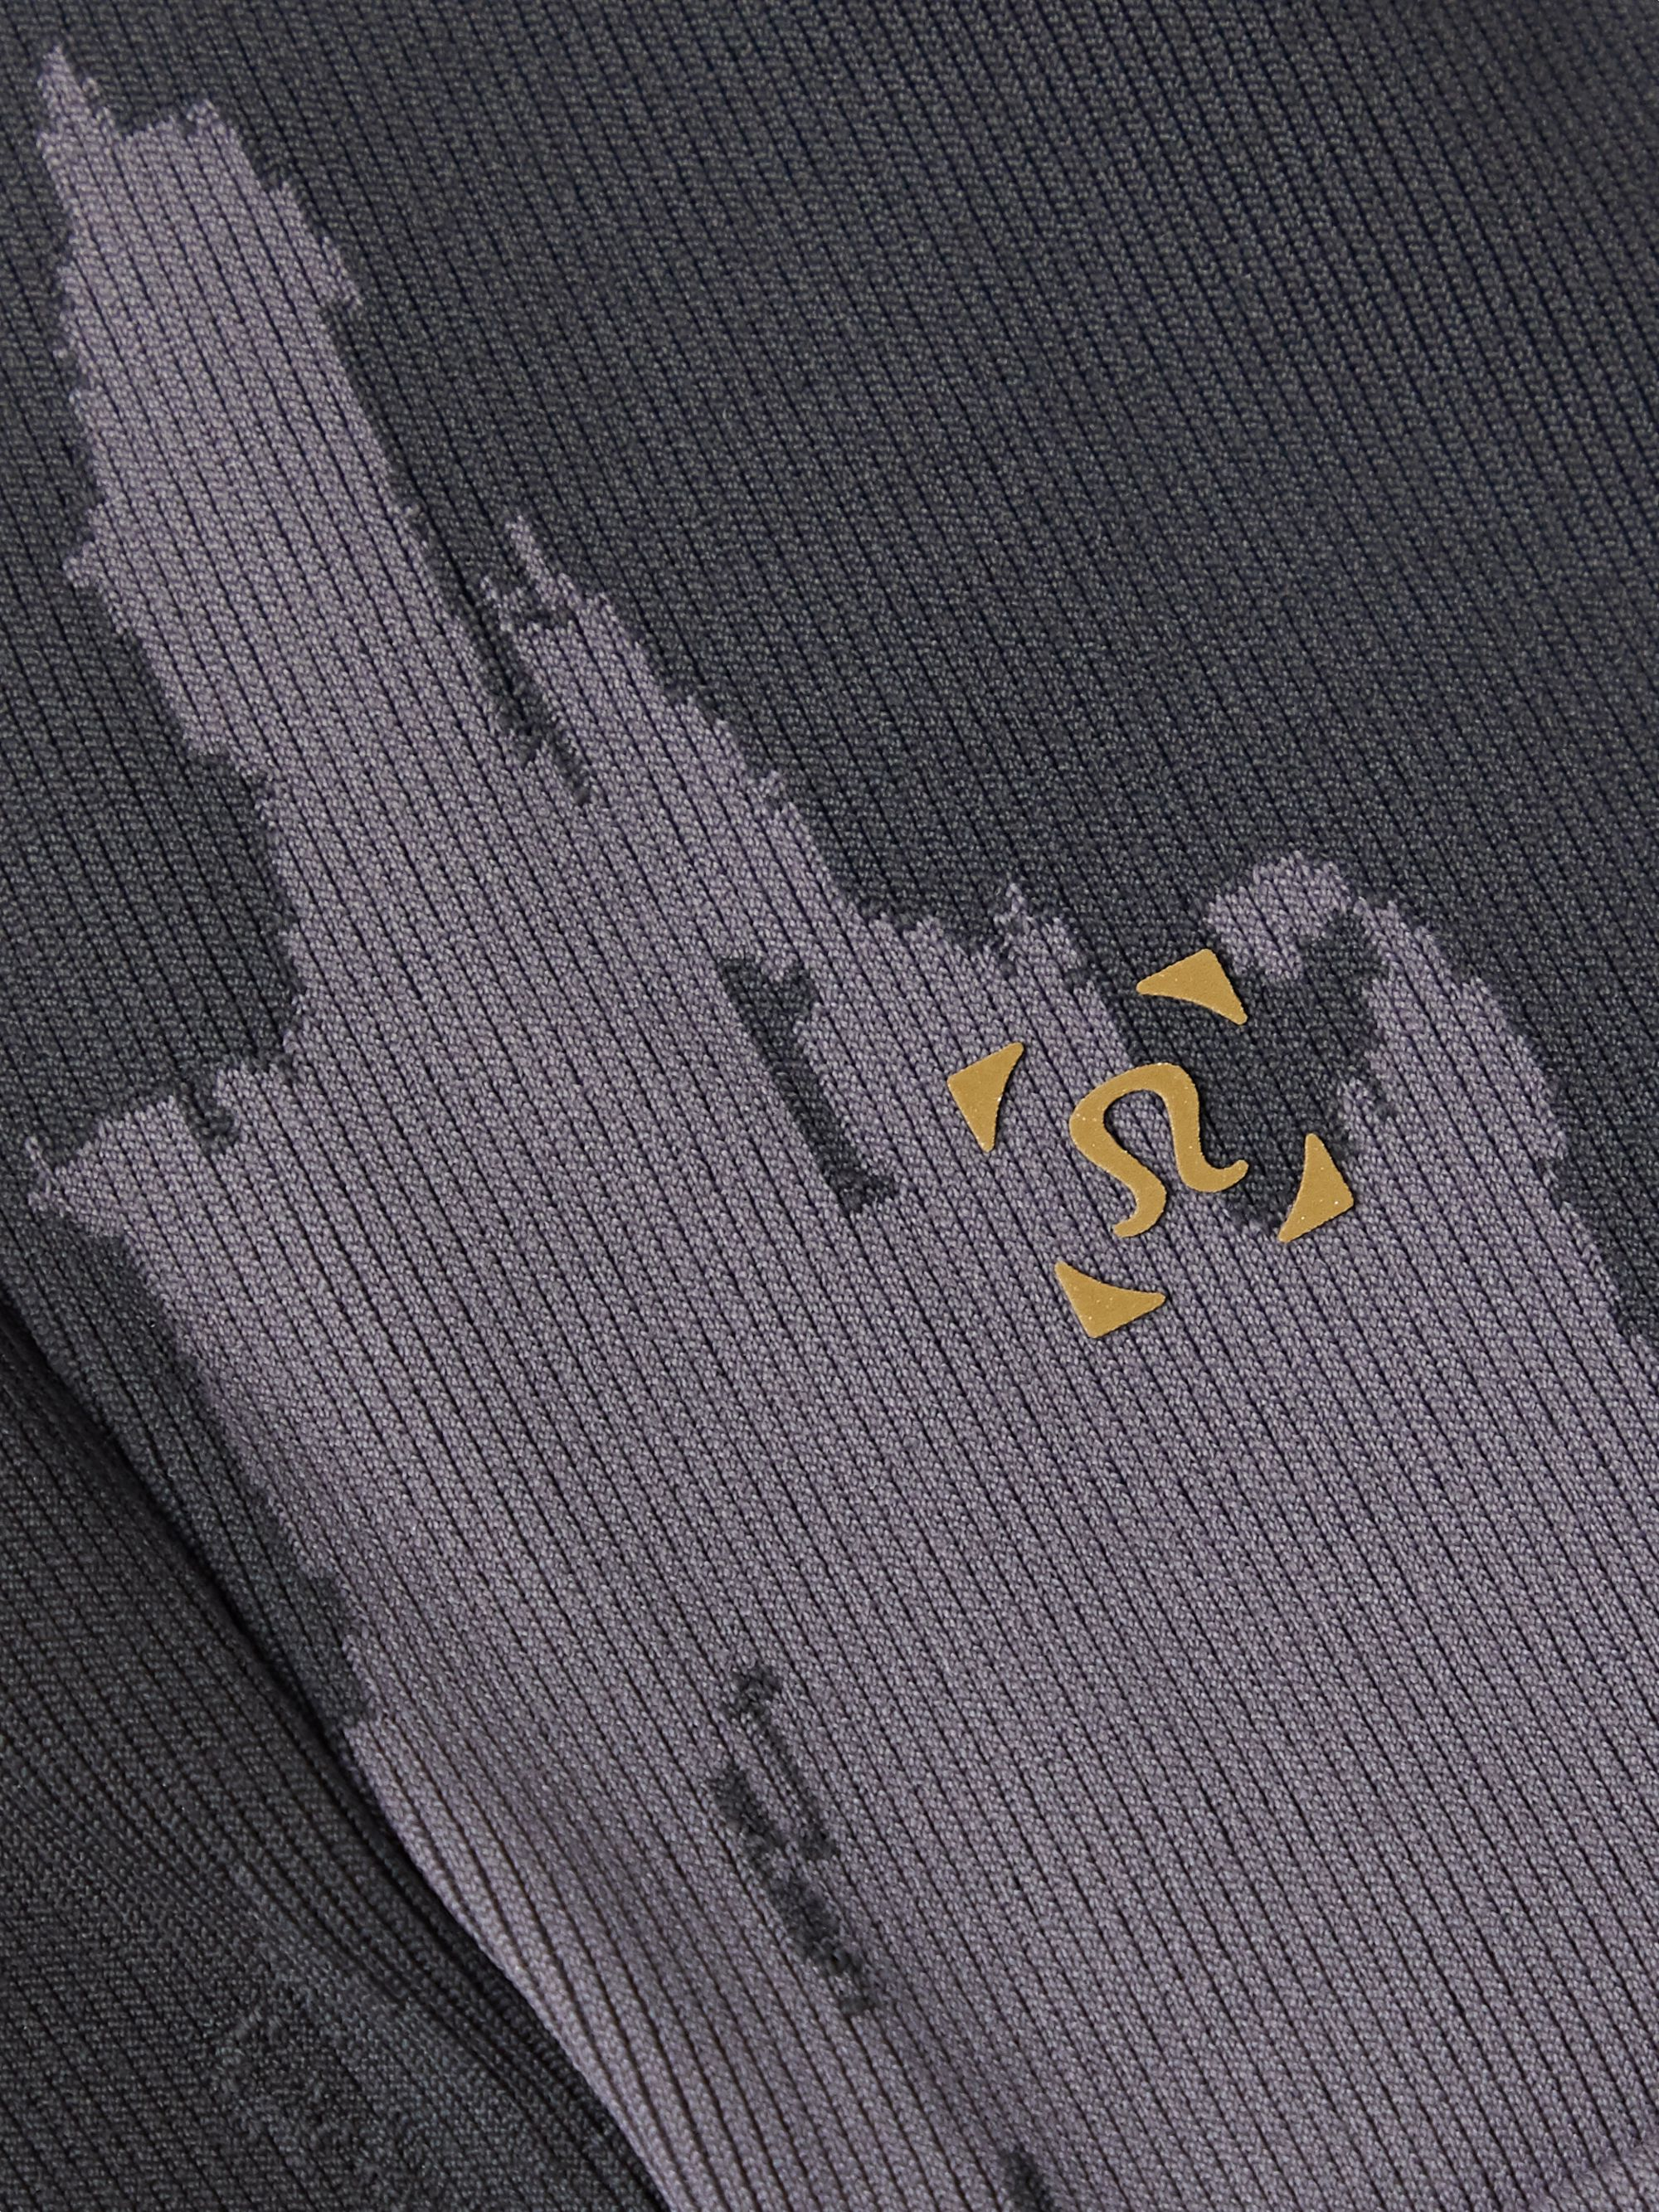 Lululemon + Robert Geller Take the Moment Slim-Fit Tapered Printed Full-On Luon Sweatpants